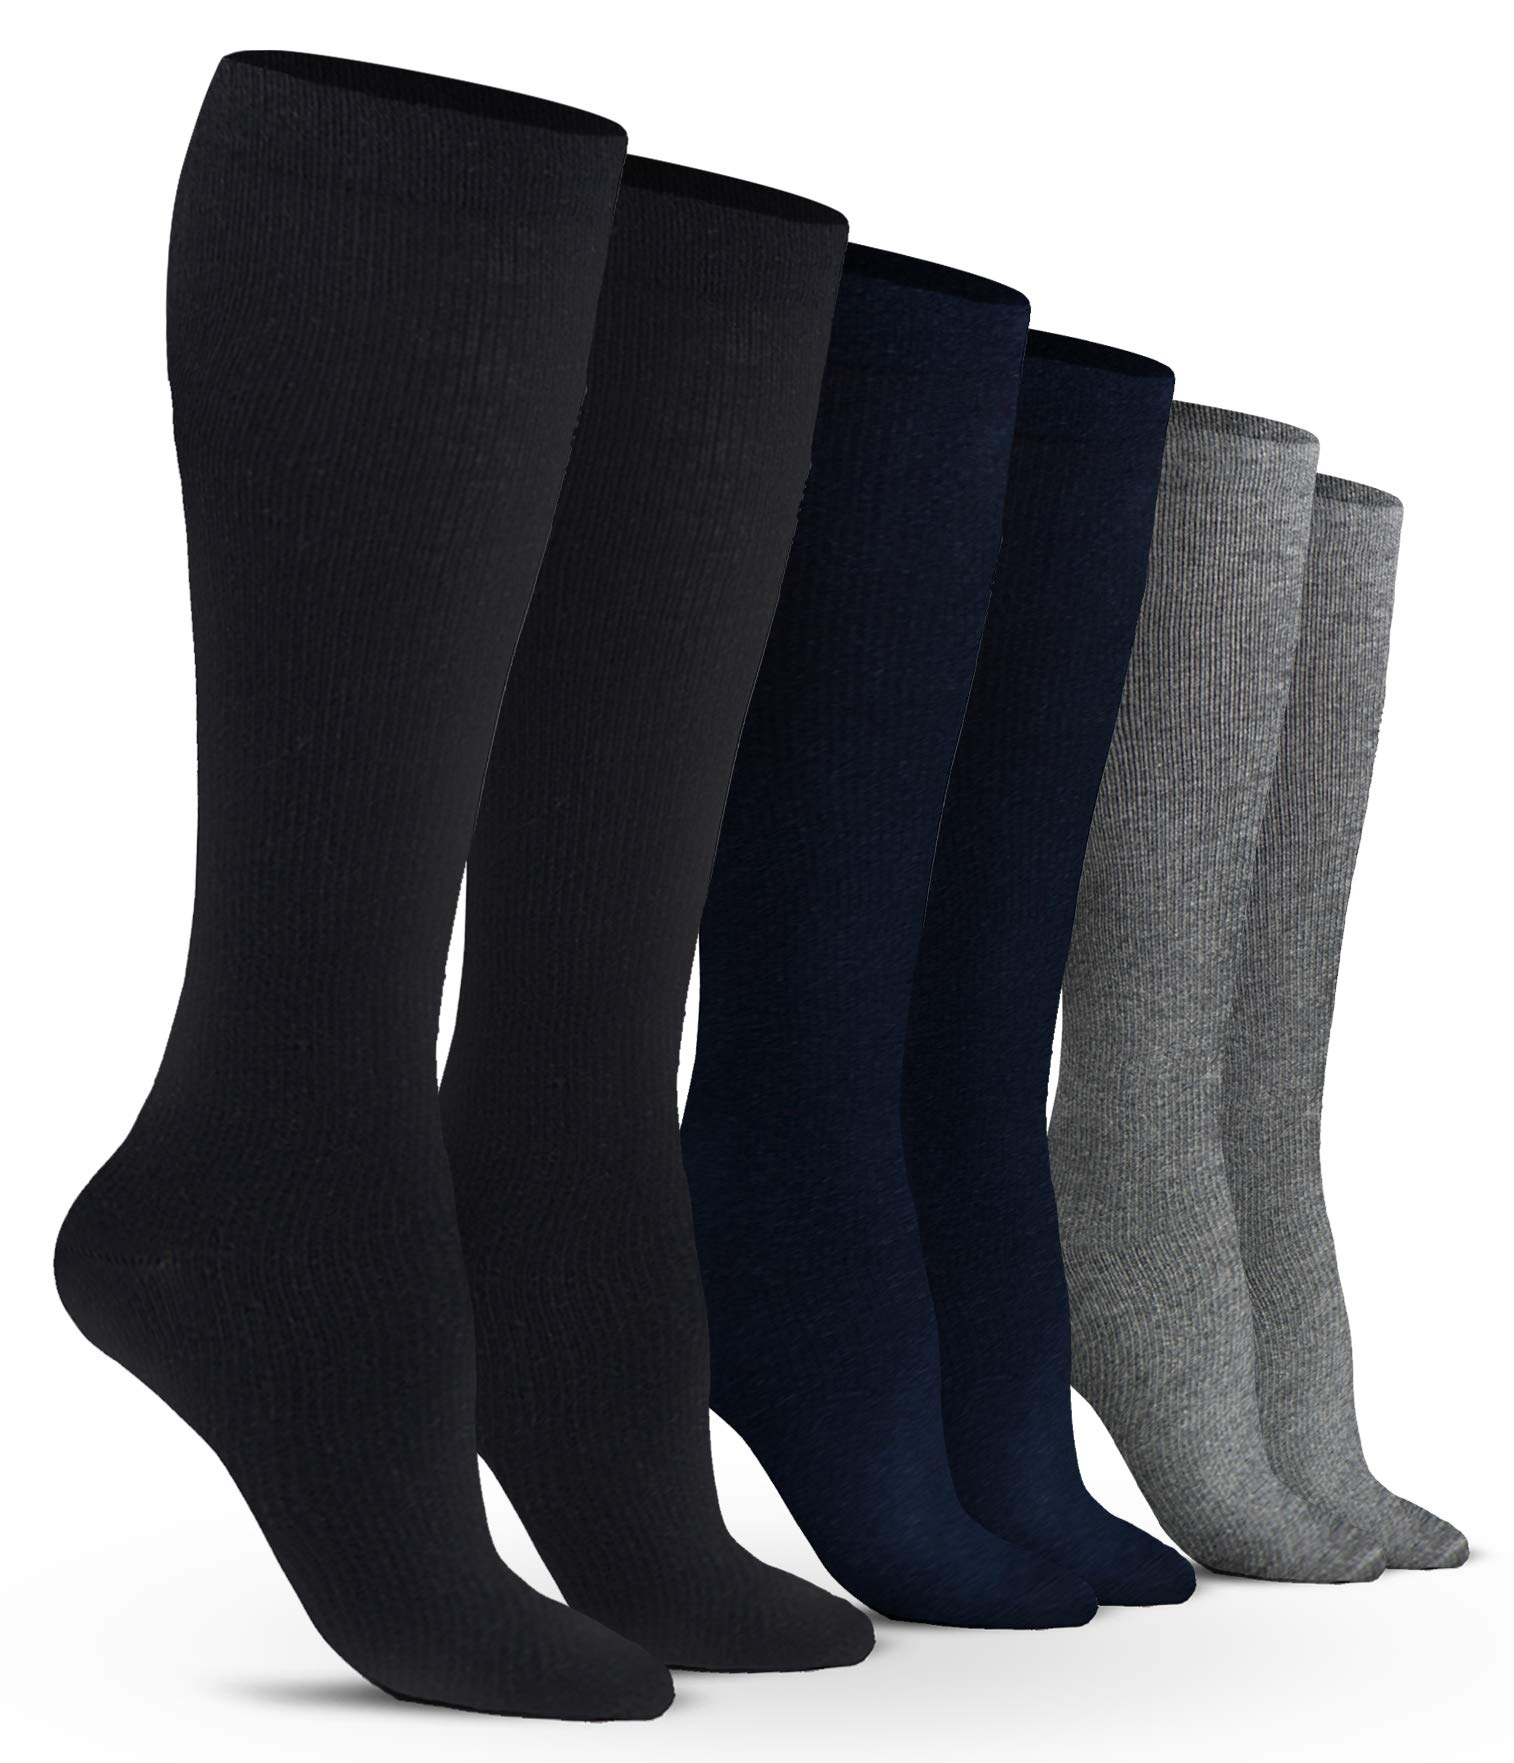 Women's Compression Socks (6 Pack) - S/M - Black, Gray, Navy - Graduated Muscle Support, Relief and Recovery. Great for Running, Medical, Athletic, Diabetic, Travel, Pregnancy, Nursing (8-15 mmHg)